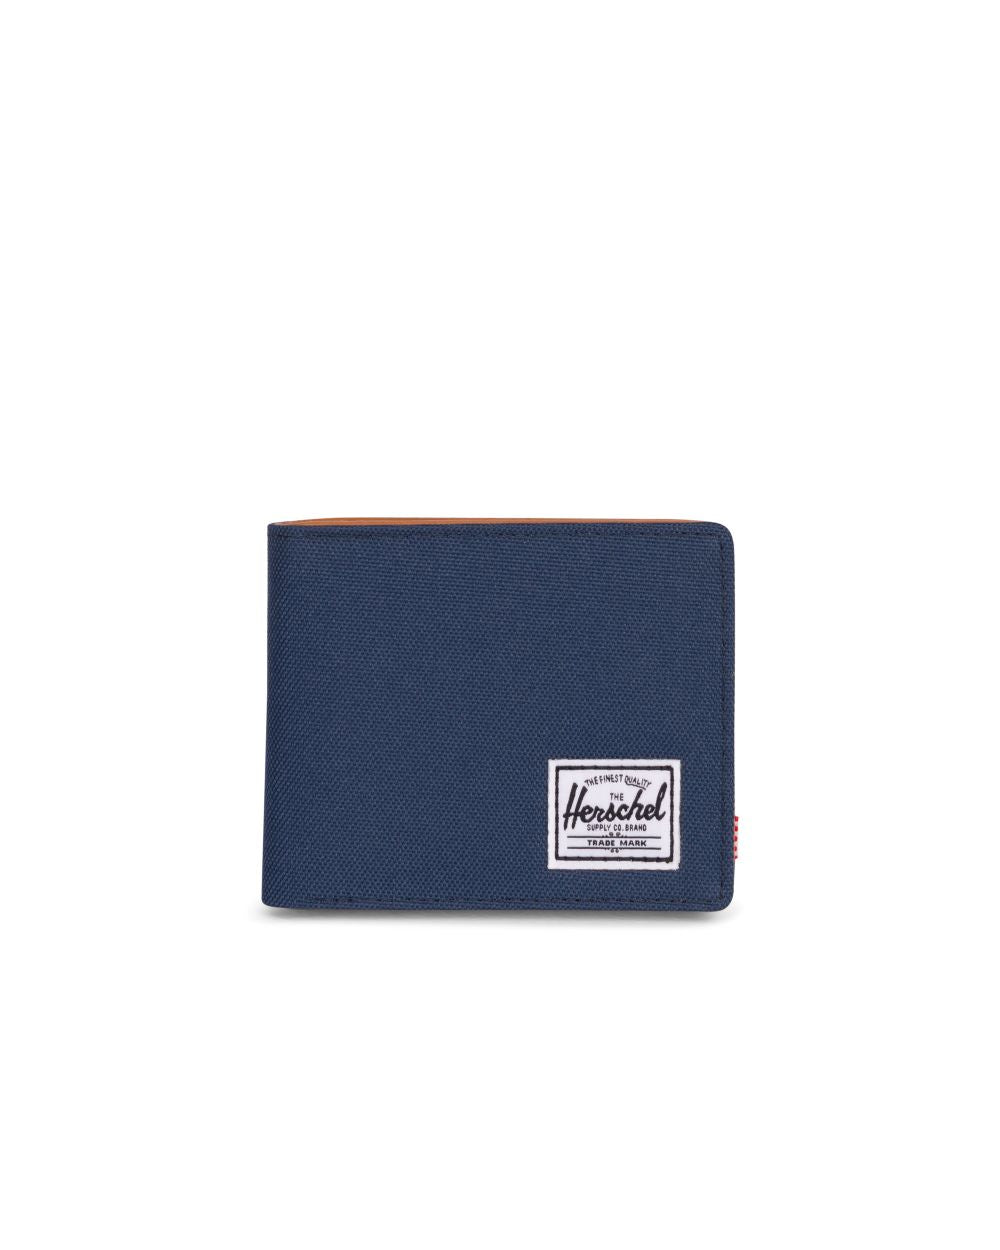 HANK WALLET - NAVY